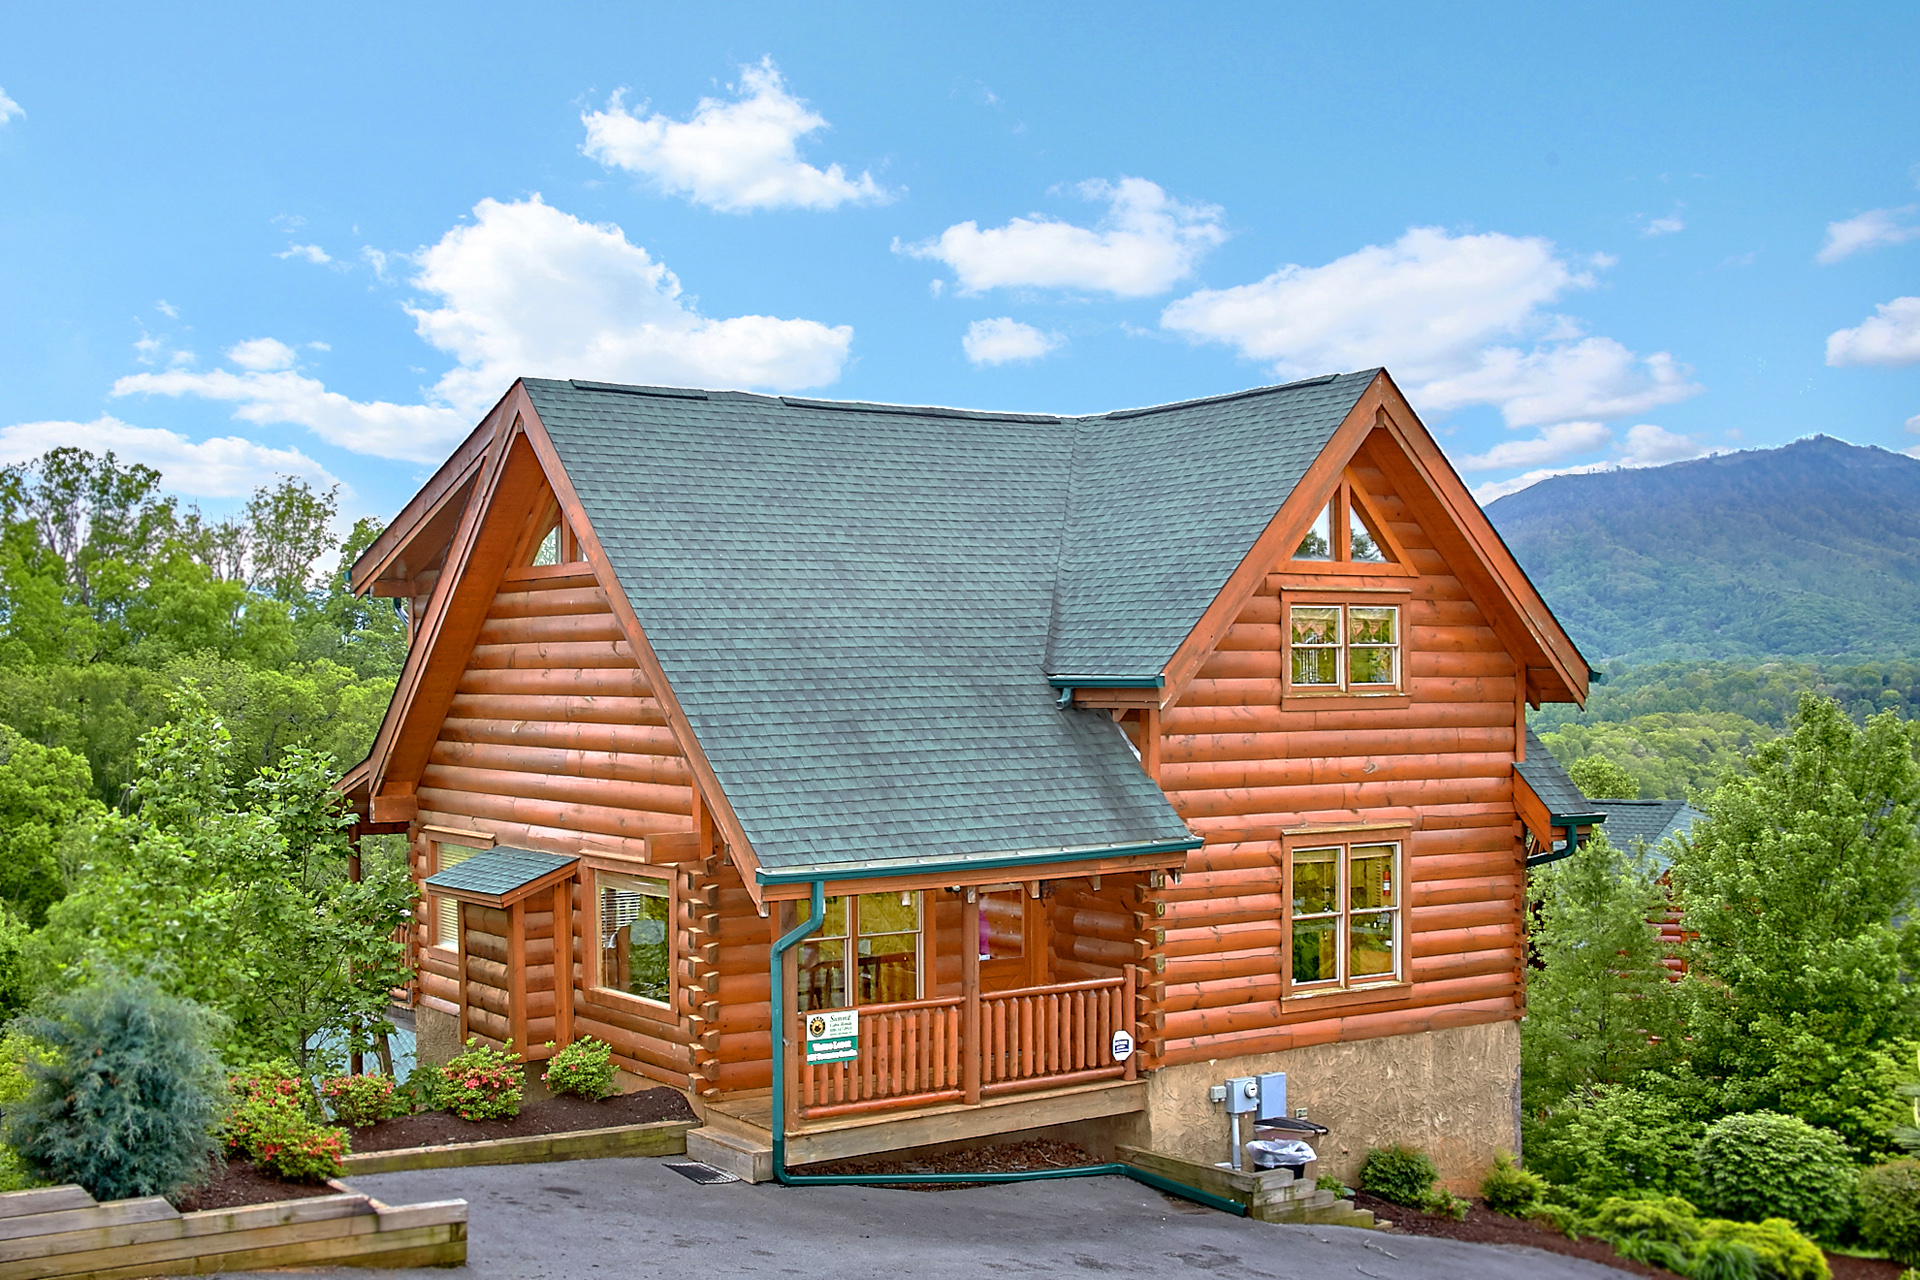 Log homes and cabins for sale in pigeon forge tn for 2 bedroom log cabins for sale